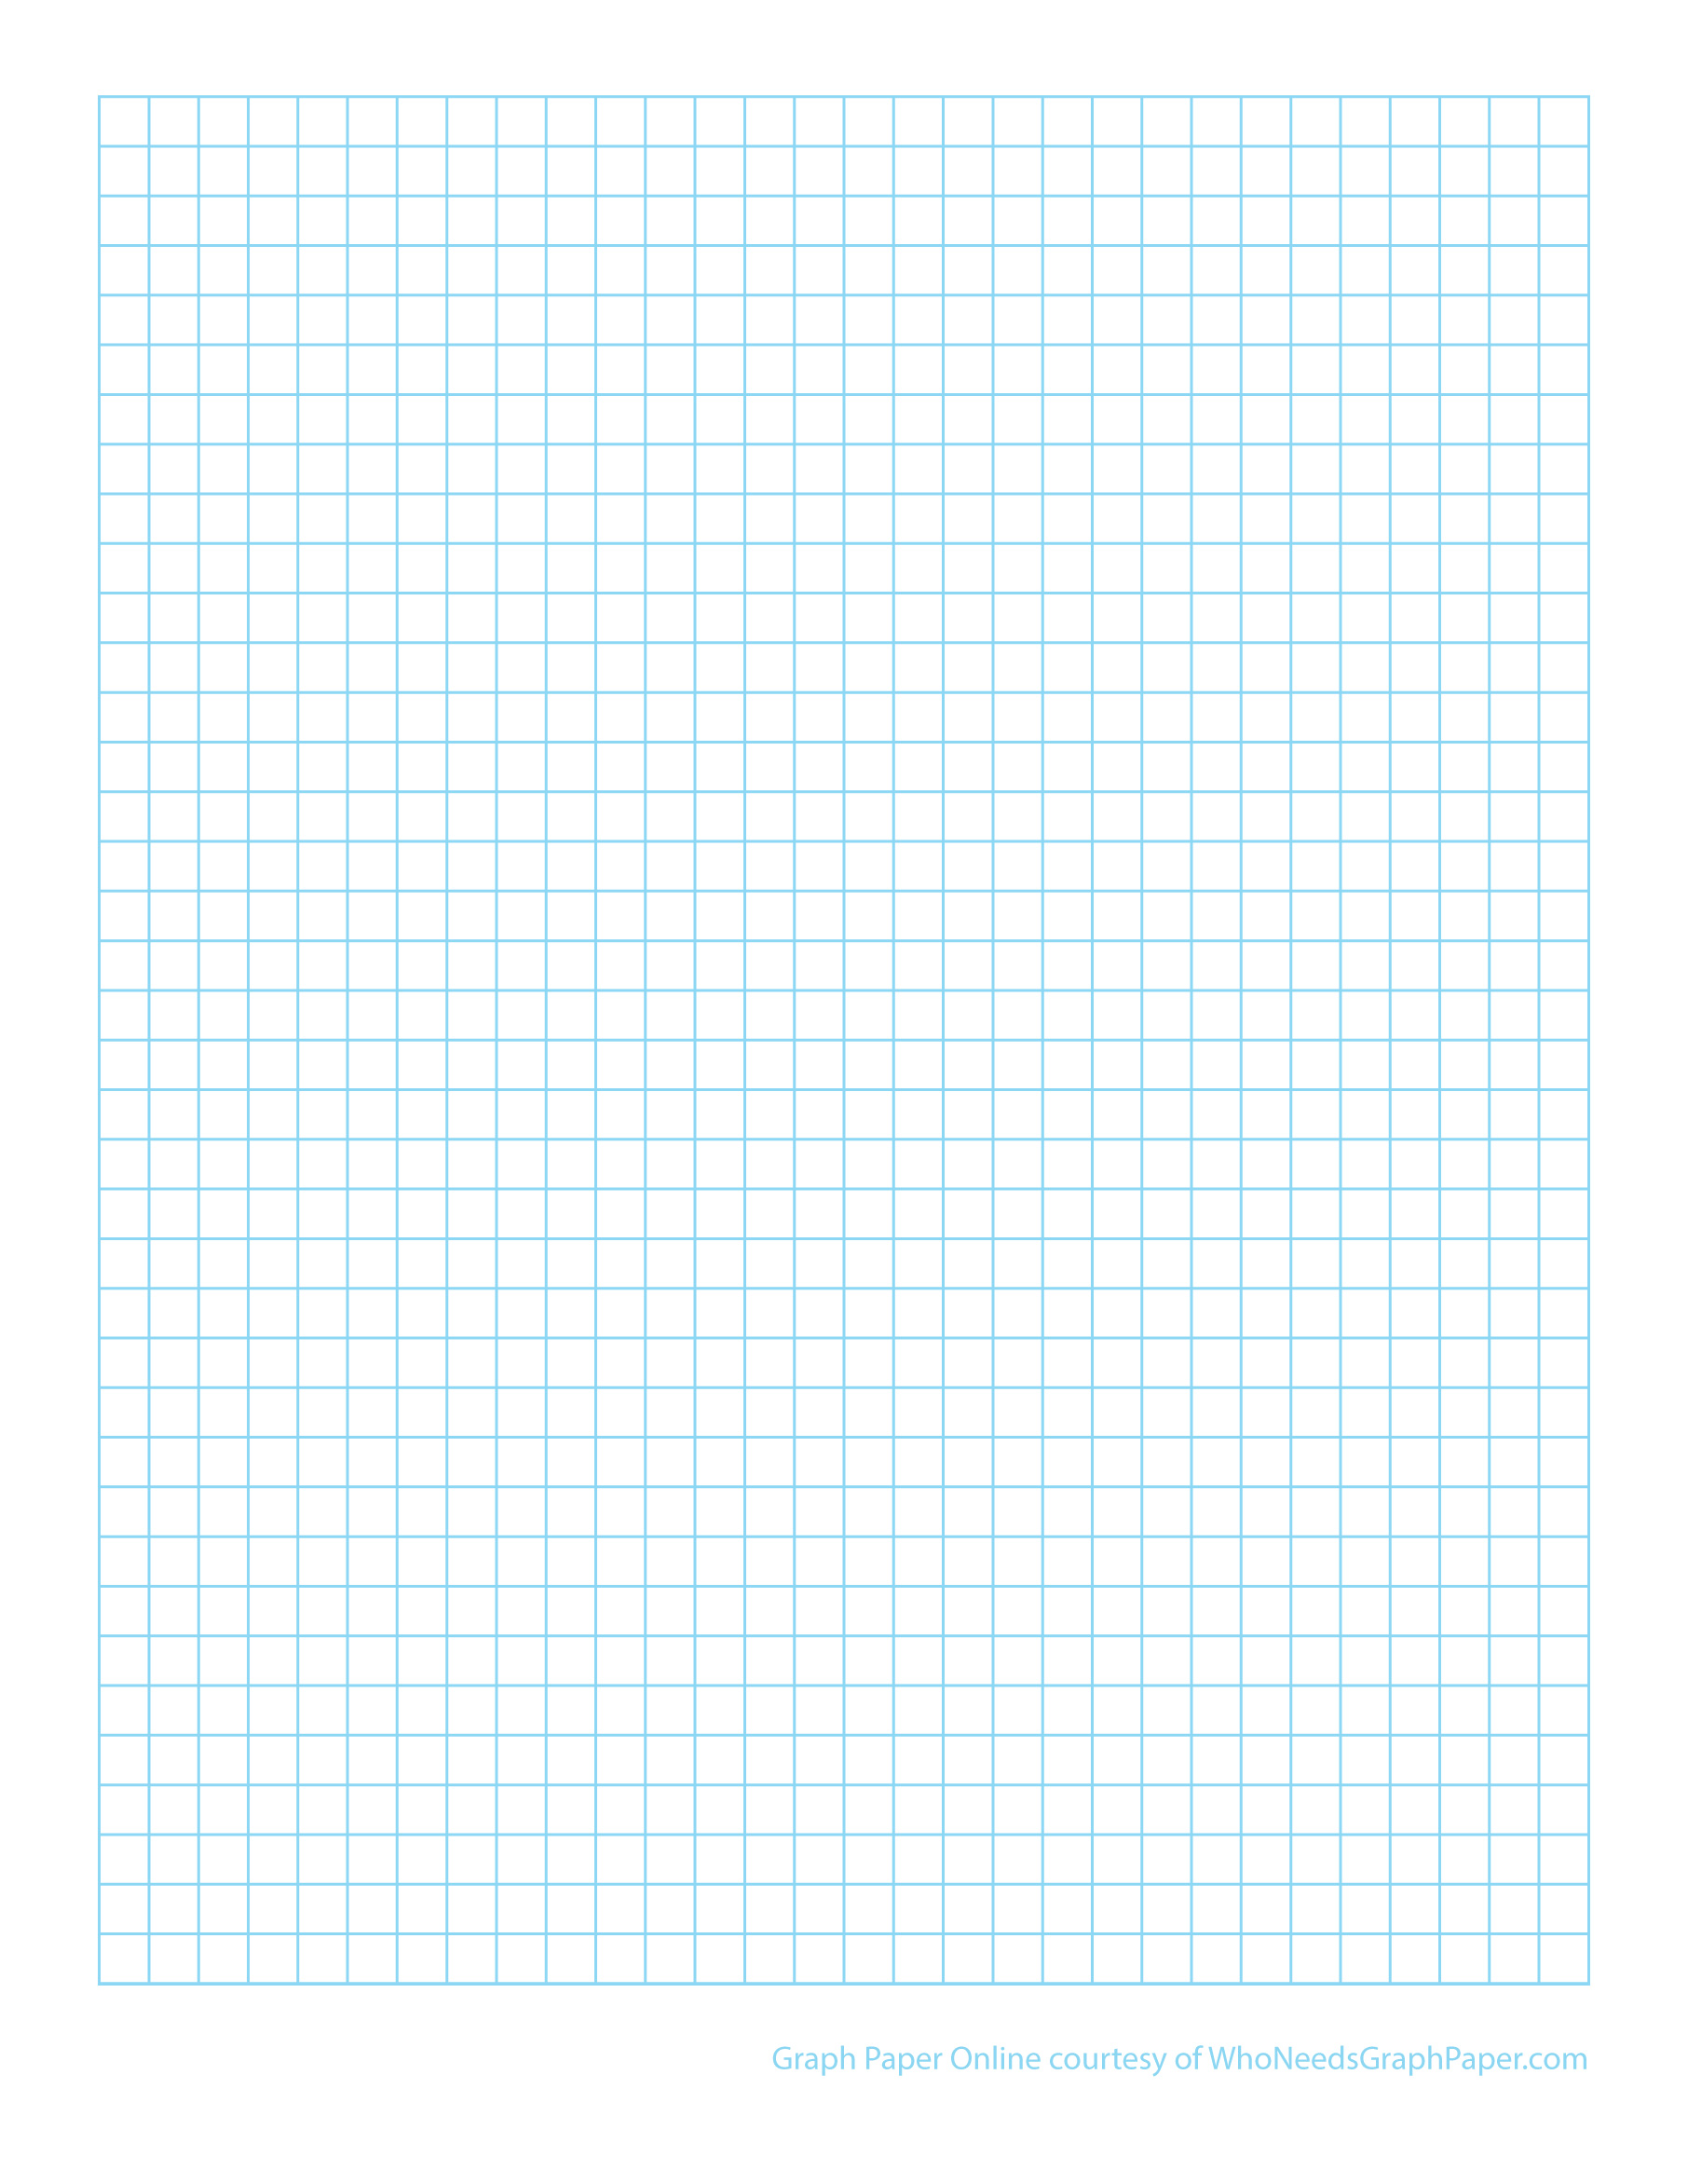 Online graph paper design pictures to pin on pinterest for Online graph paper design tool